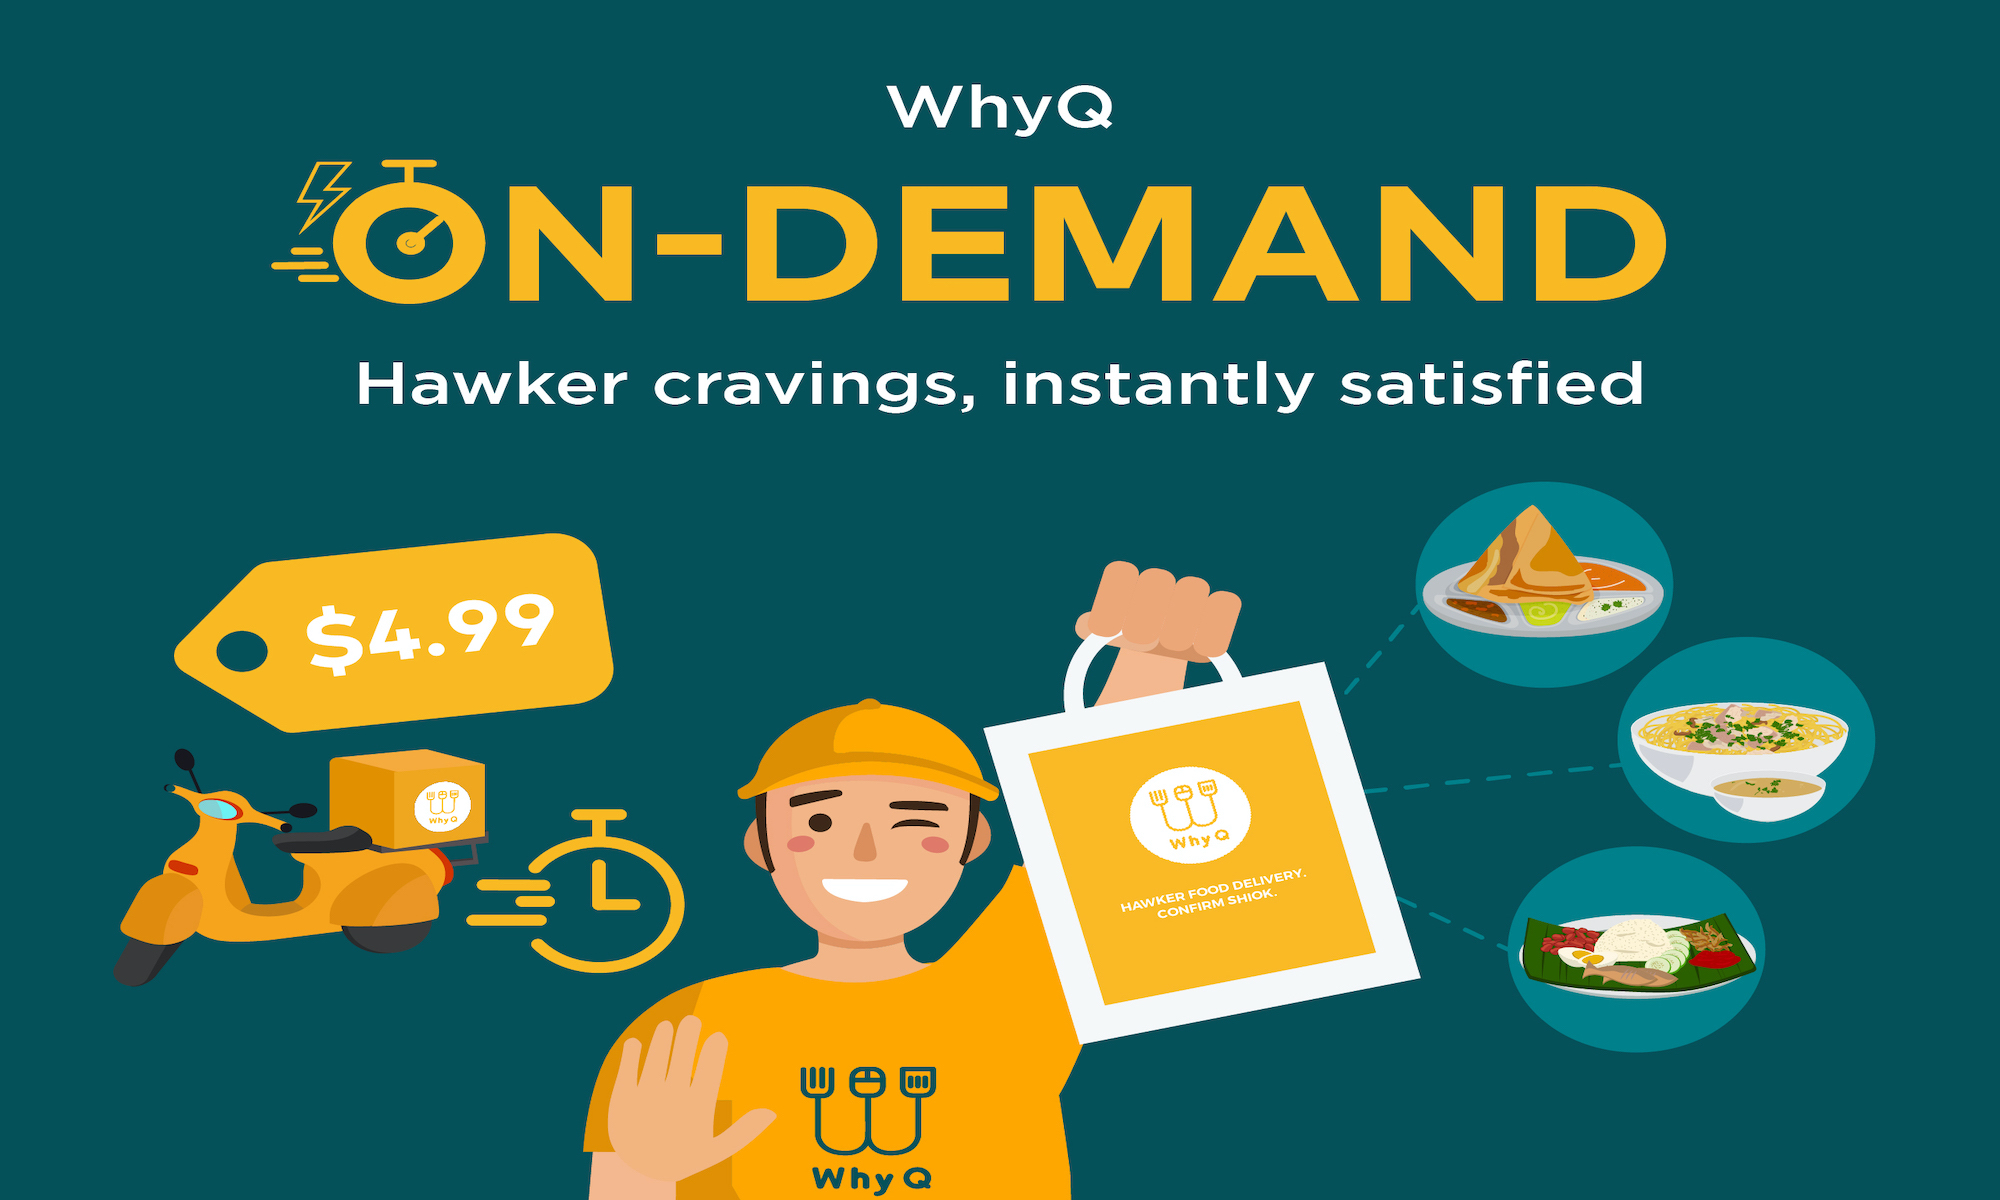 WhyQ On-Demand Hawker Cravings, Instantly Satisfied